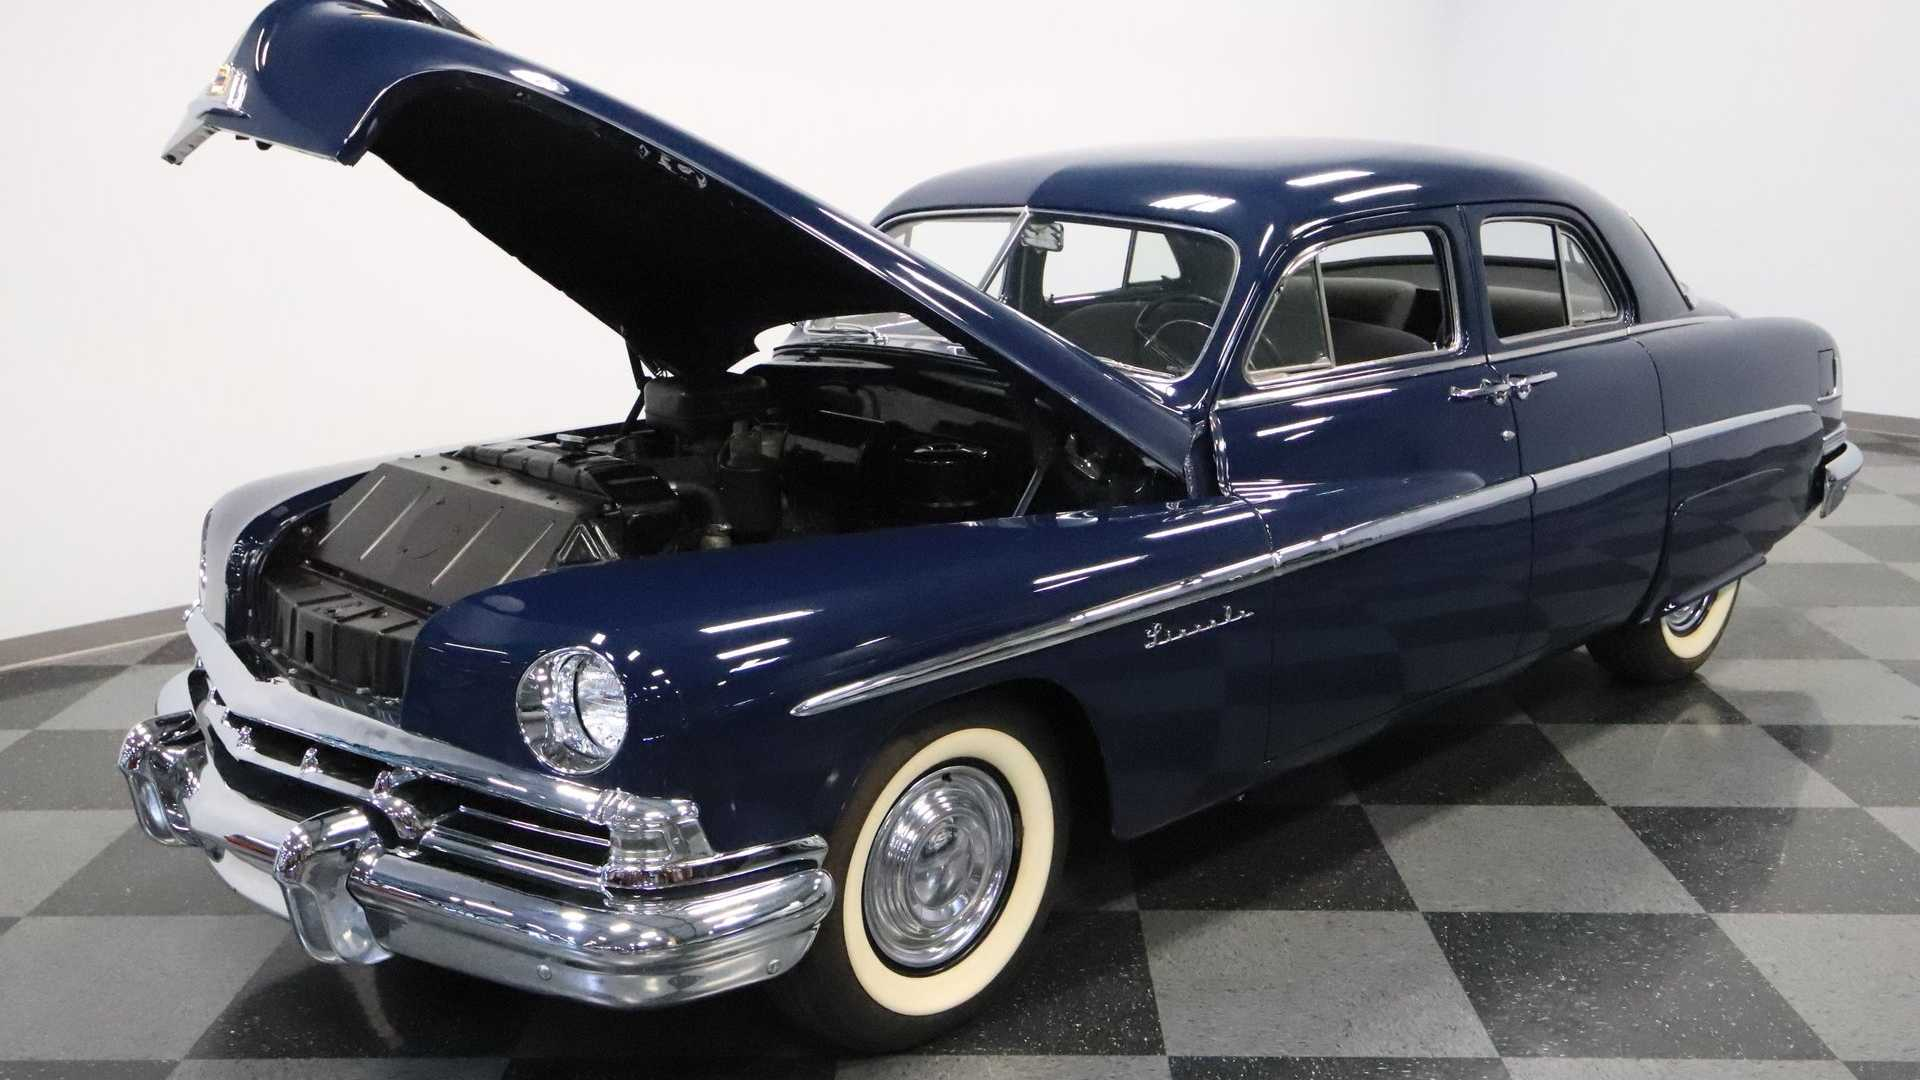 This Vintage Luxury 1951 Lincoln Sedan Could Be Yours Today